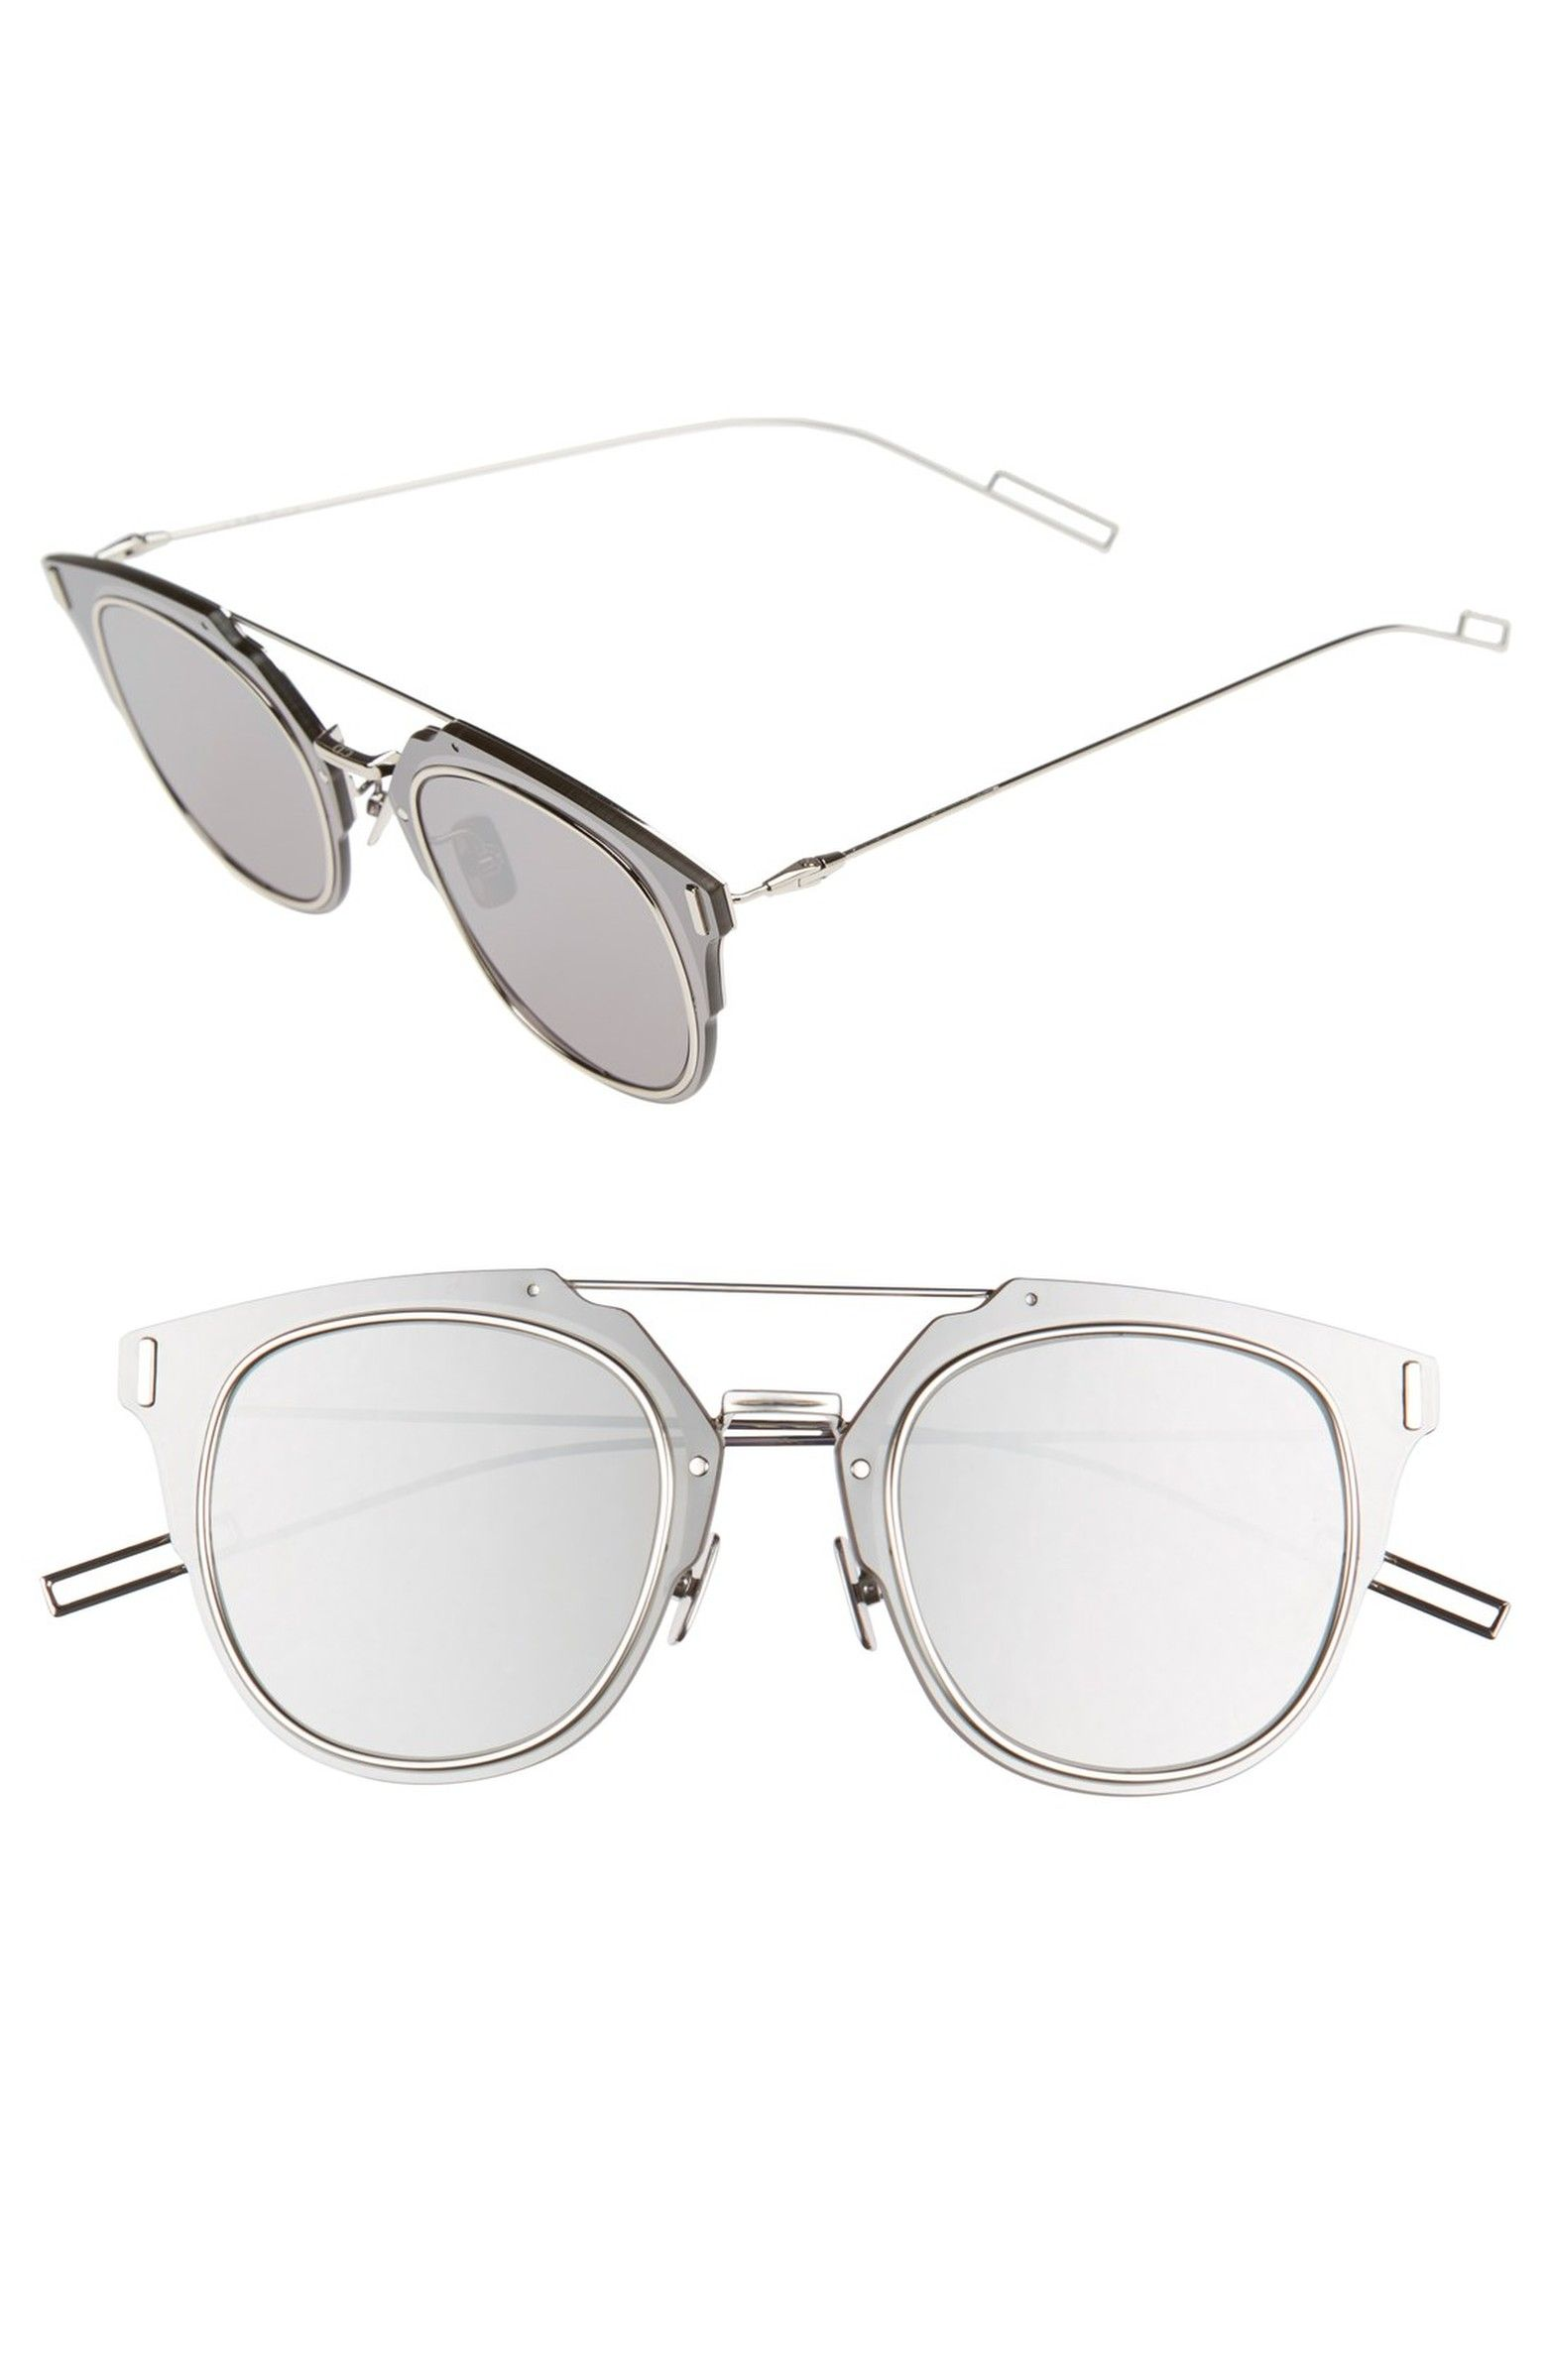 522d0c8de8 Main Image - Dior Homme 'Composit 1.0S' 62mm Metal Shield Sunglasses ...